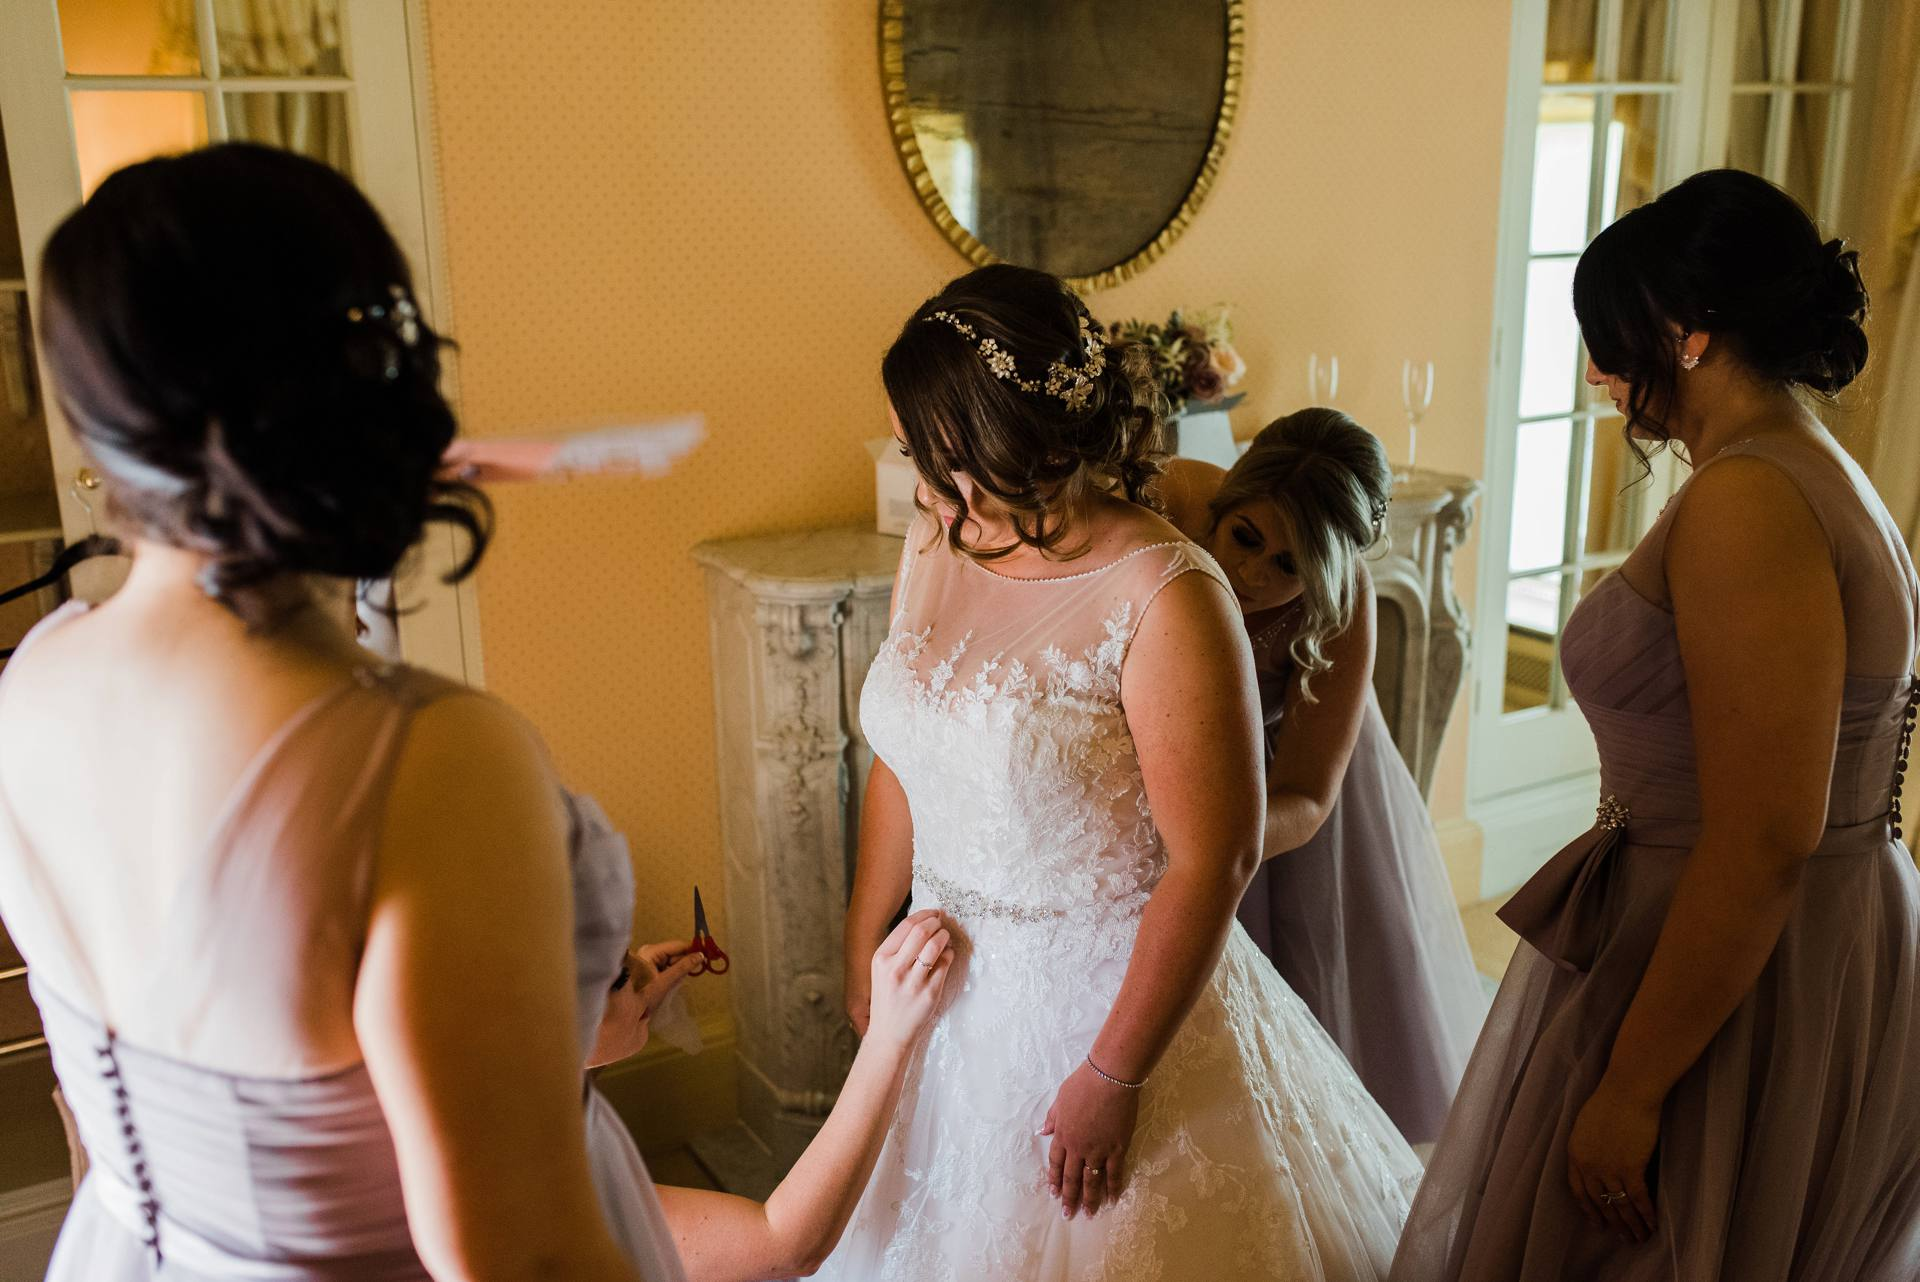 Bride getting ready surrounded by bridesmaids